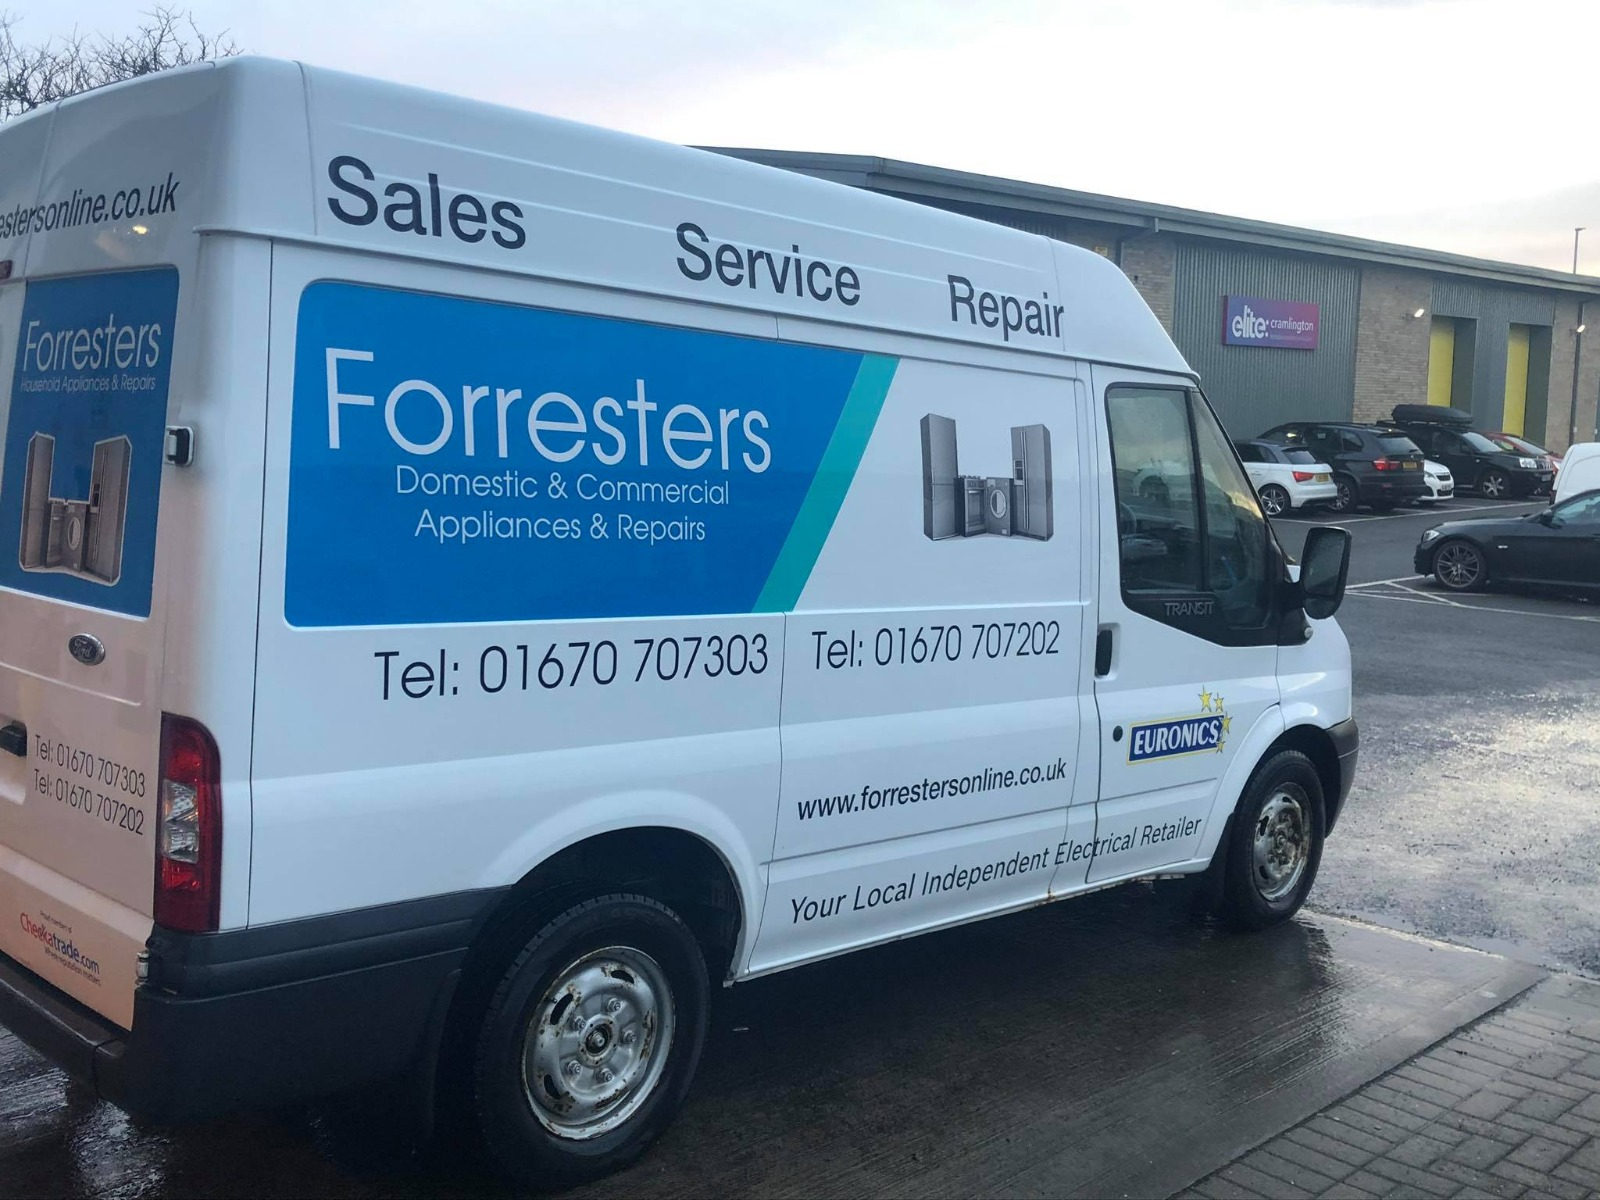 Forresters Van. Need Help? Give us a call today!